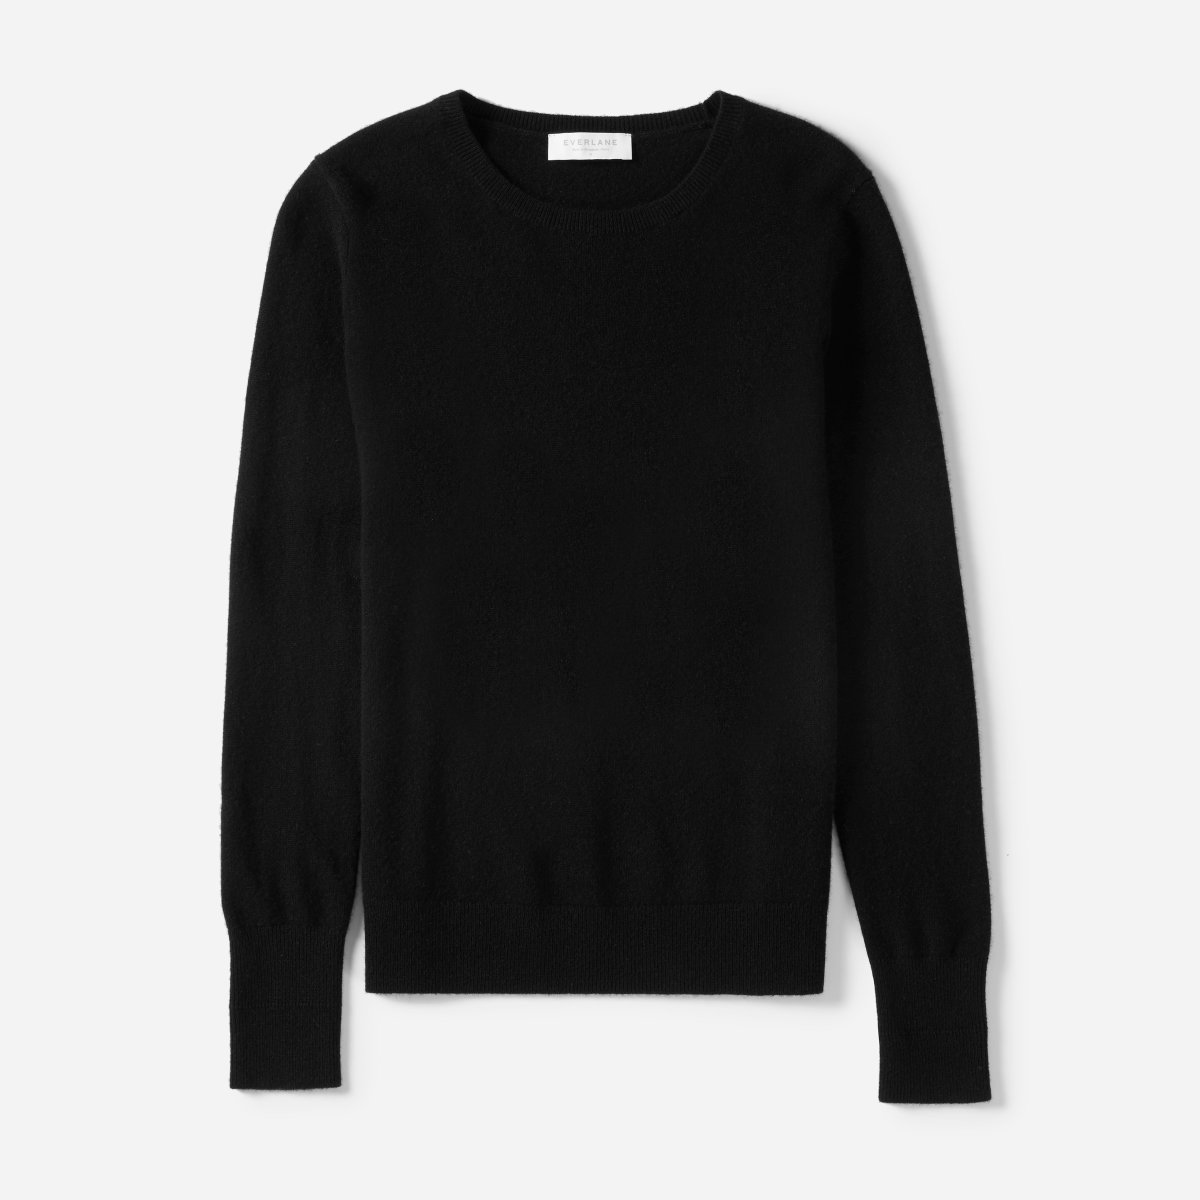 cashmere sweater - Trust me, once you buy a cashmere sweater, you'll never want to wear anything else. These never go out of style.